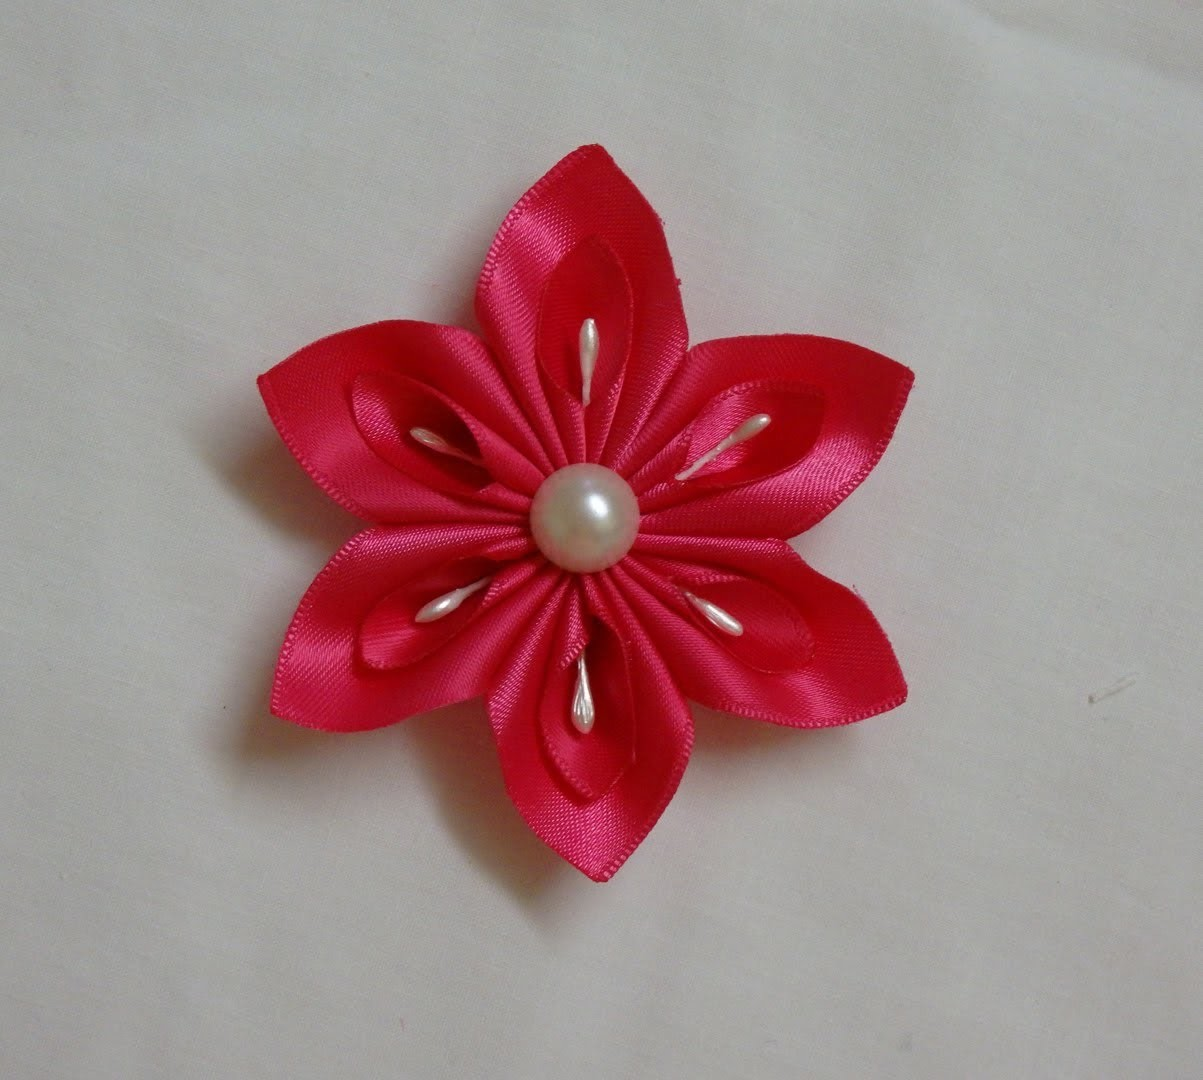 DIY Kanzashi flower, easy ribbon flowers tutorial, how to make,kanzashi flores de cinta